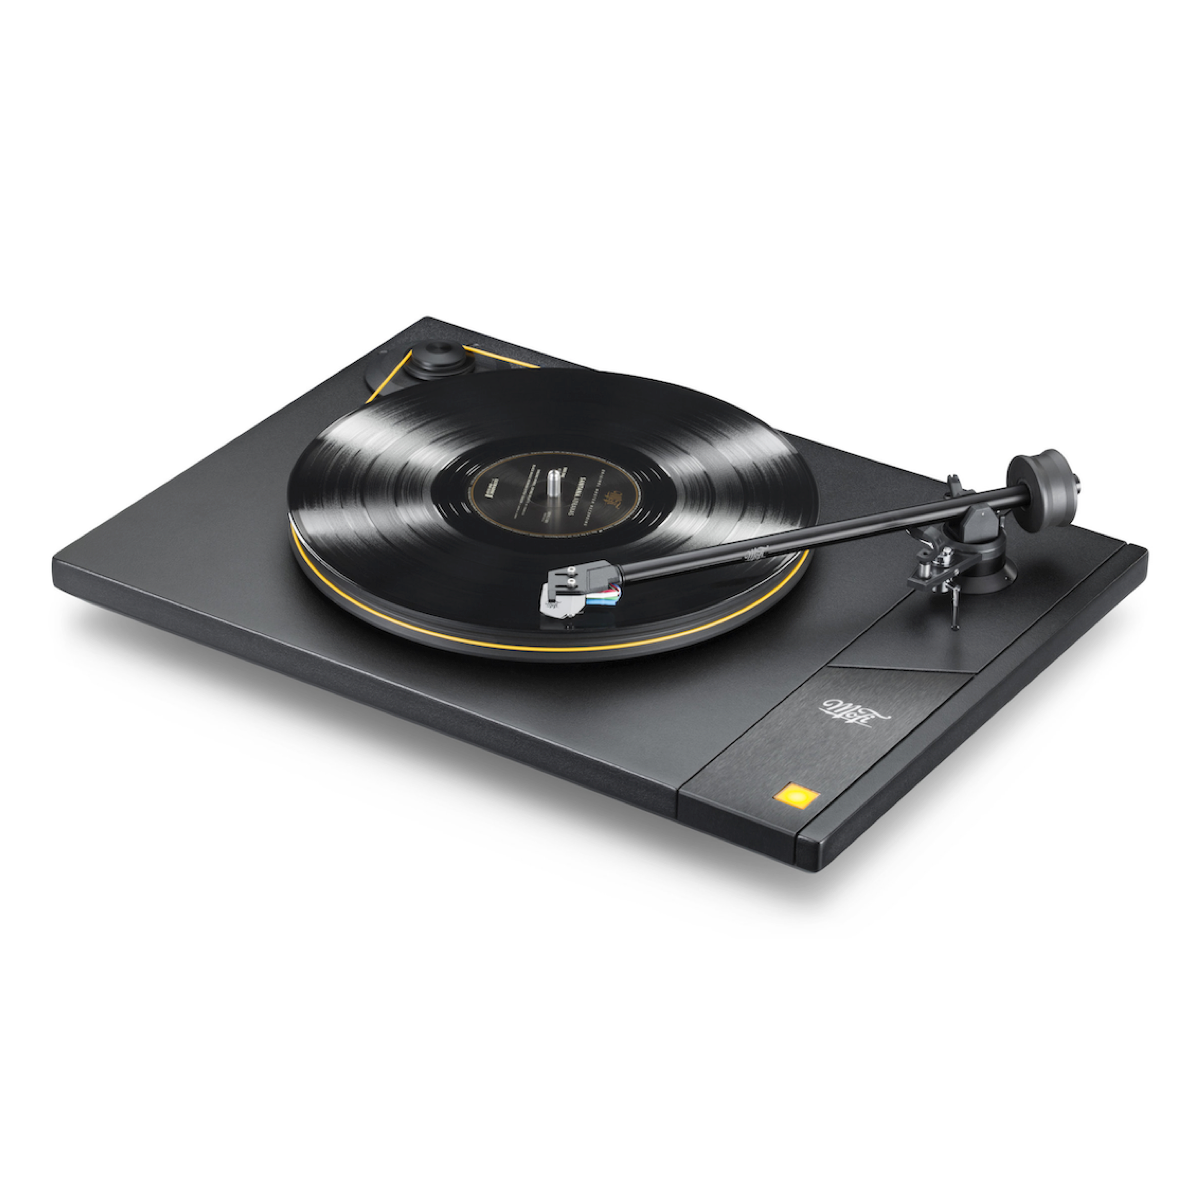 MoFi StudioDeck - Turntable, MoFi Electronics, Turntable - AVStore.in